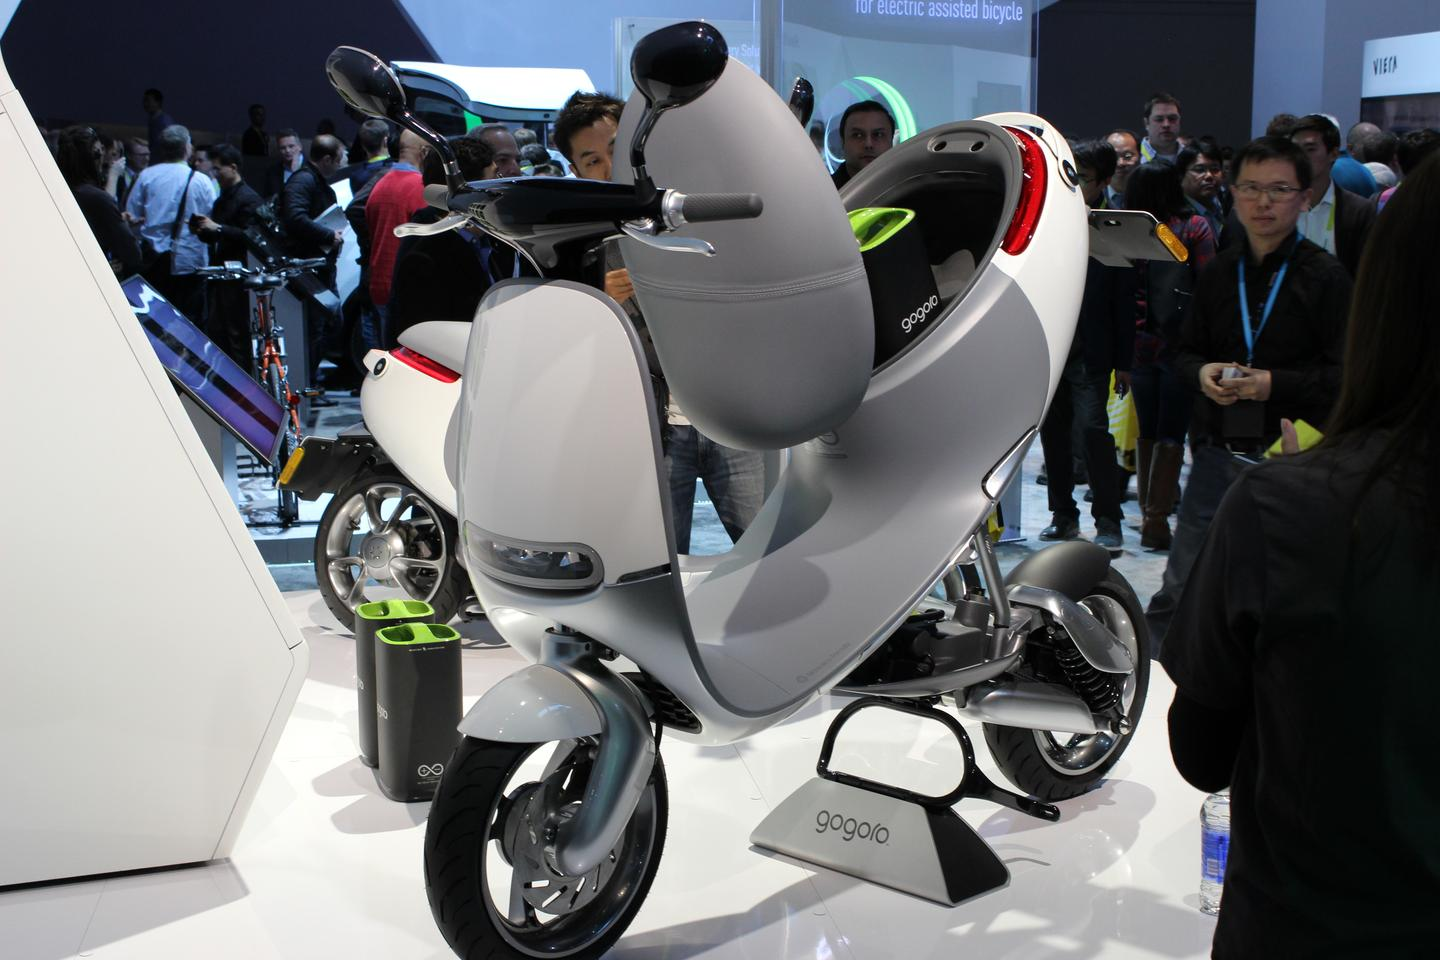 With a frame crafted from racing grade aluminium, the 94 kg (207 lb) Gogoro's electric motor turns out 8.58 hp and a top speed of 95 km/h (60 mph) (Photo: Will Shanklin/Gizmag.com)